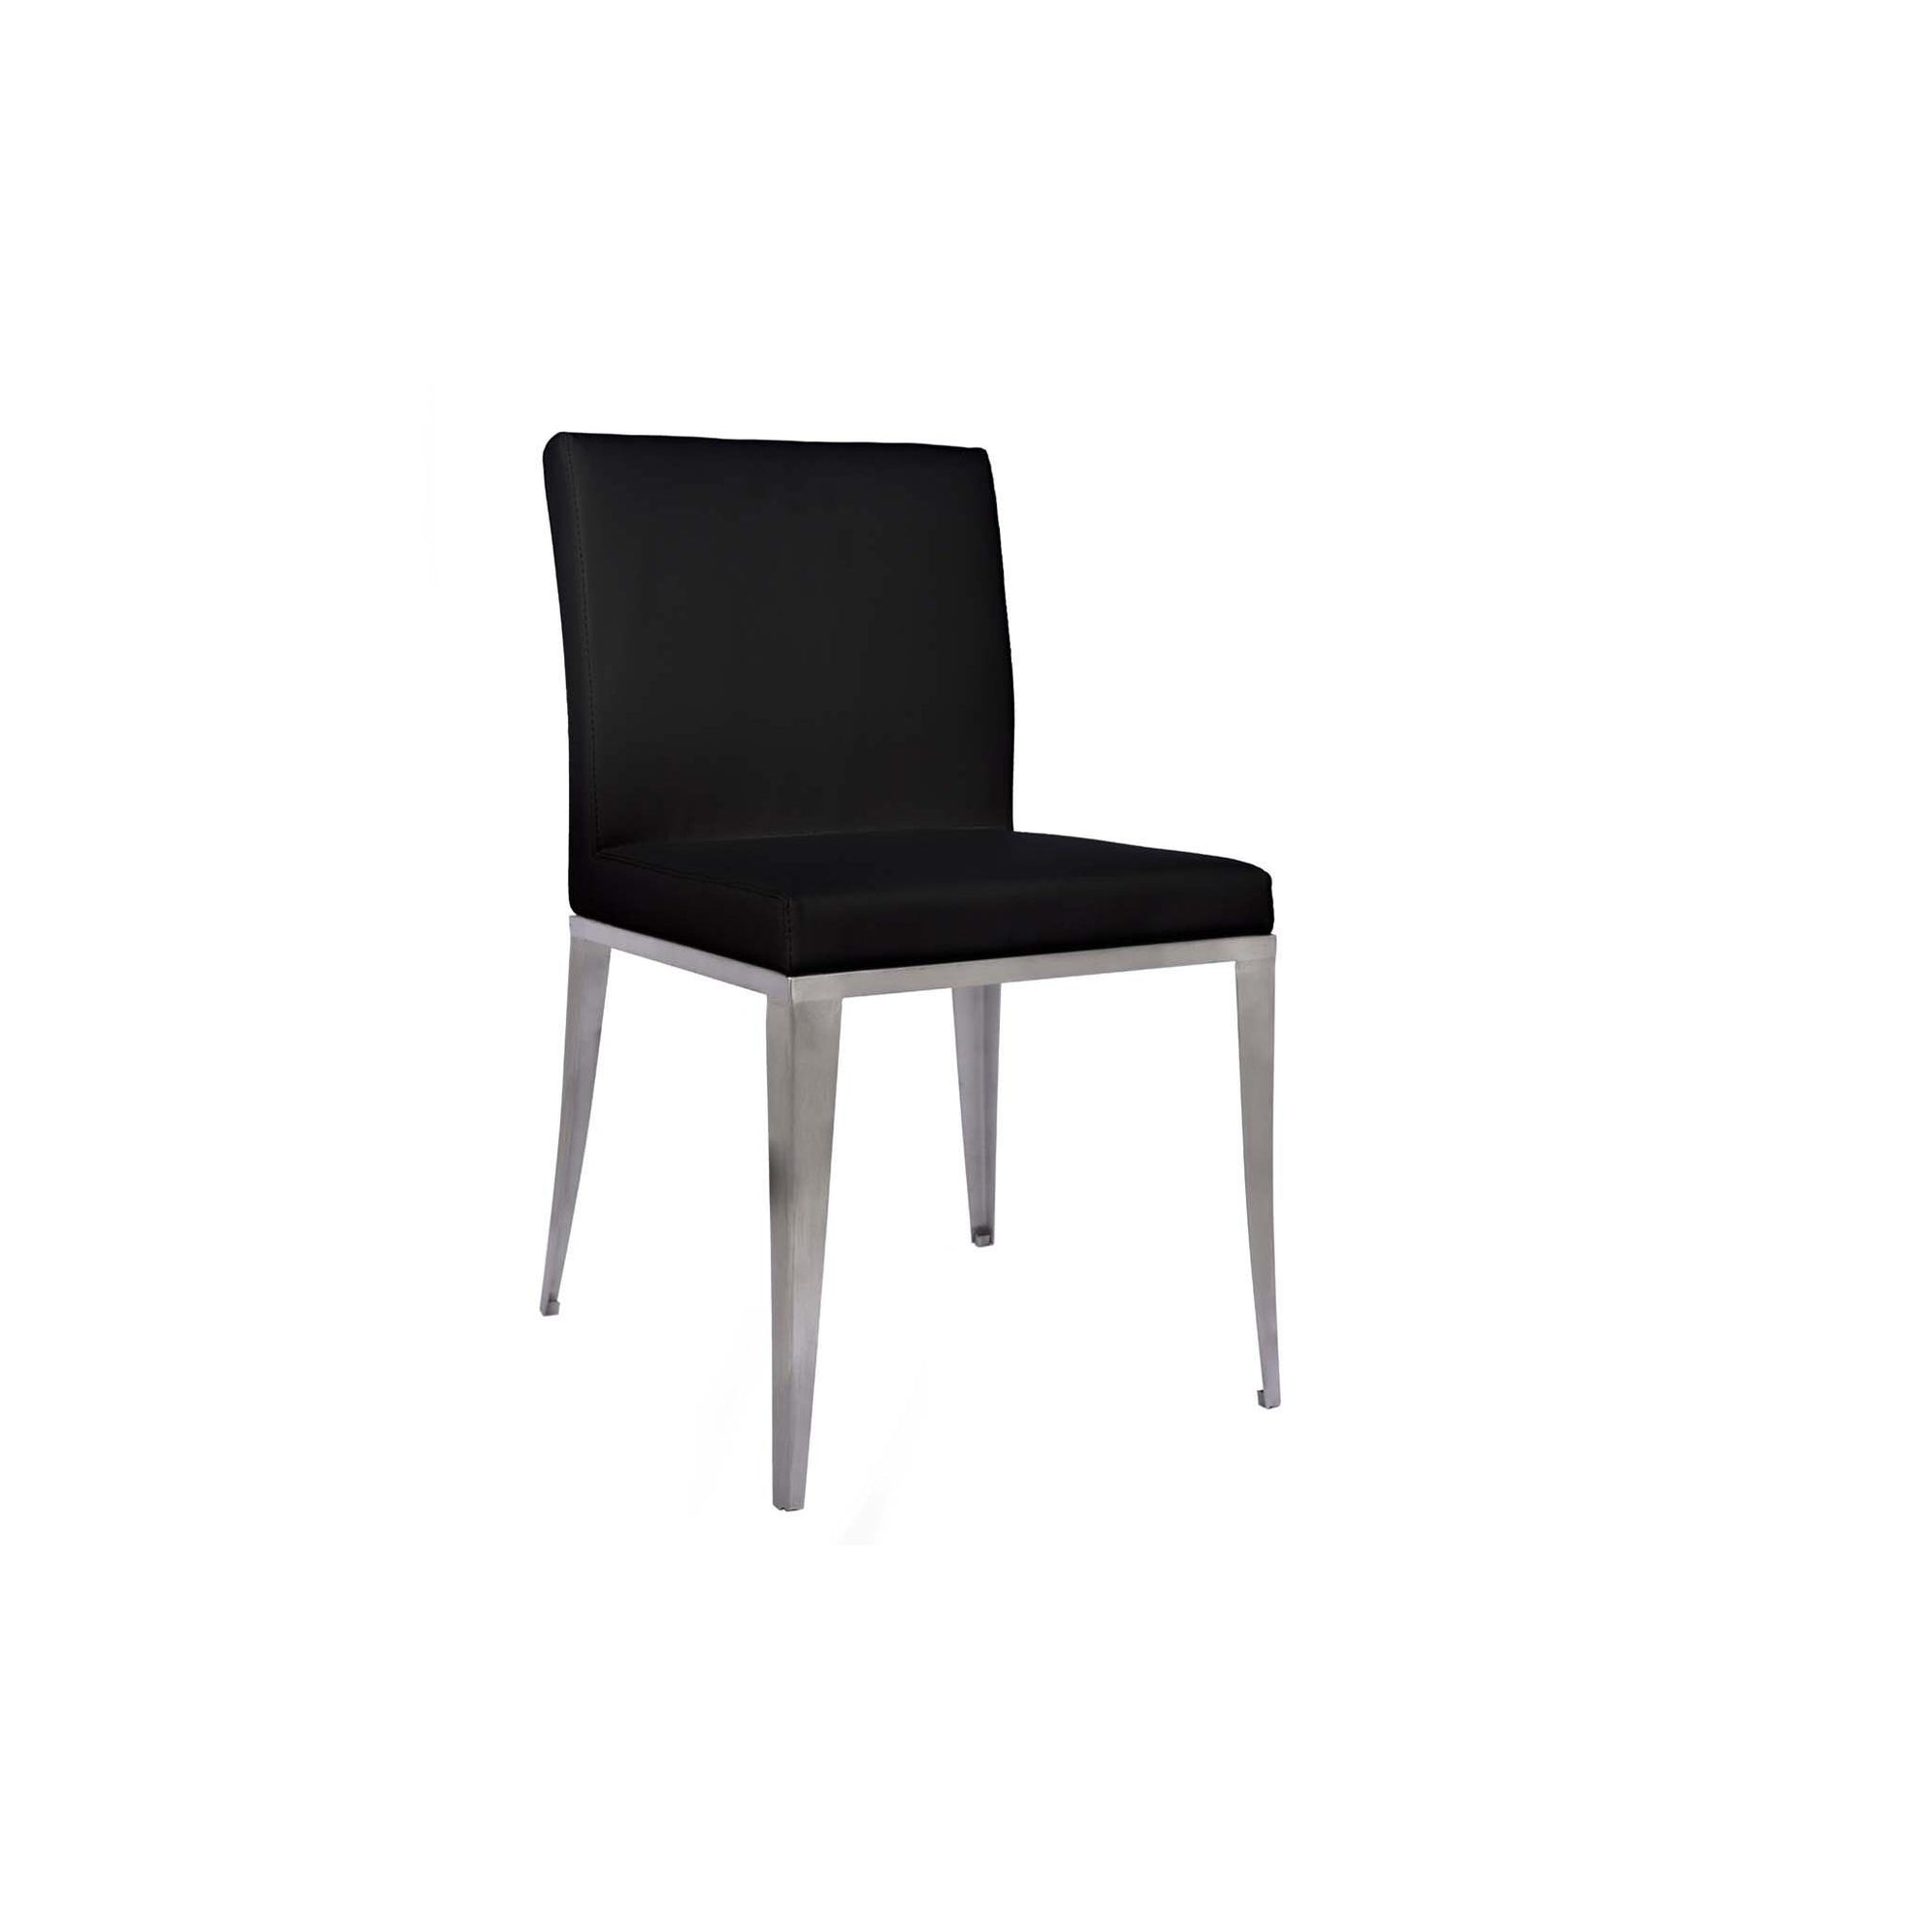 Bellini-1008 Dining Chair-Dining Chairs-MODTEMPO